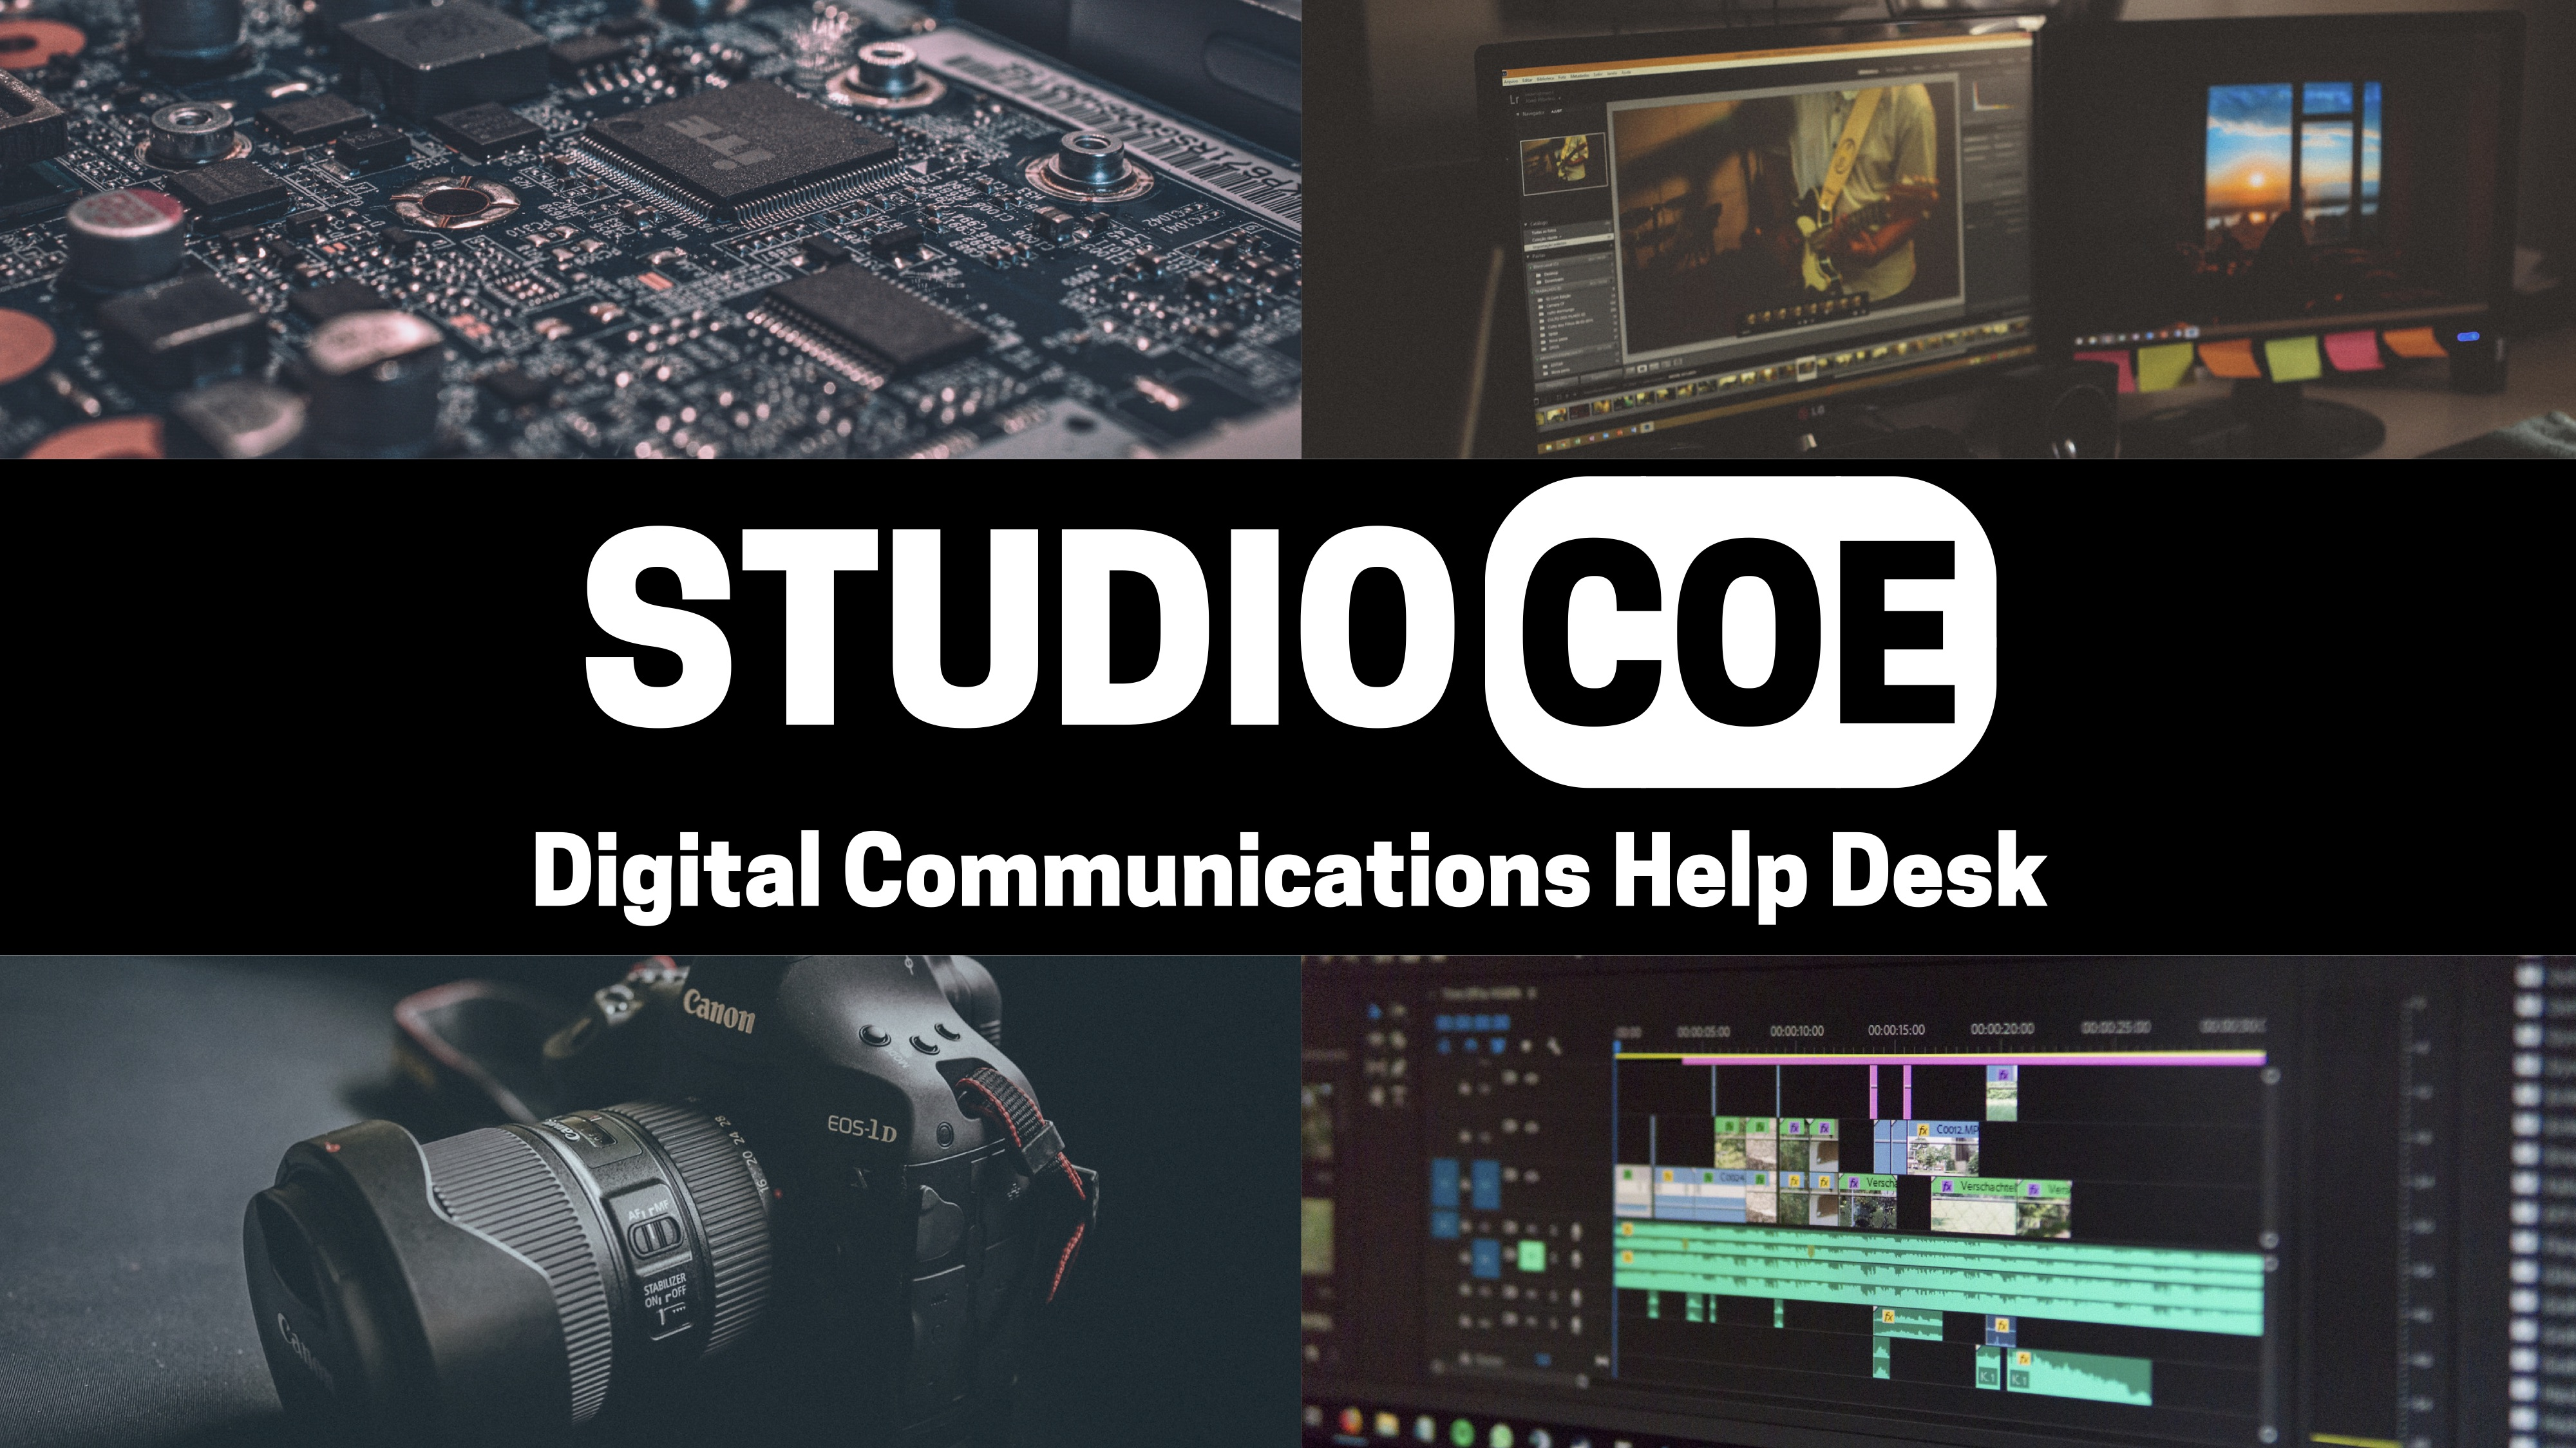 Studio Coe, Digital Communications Help Desk. Featuring image of camera, computer screen, and hard drive.